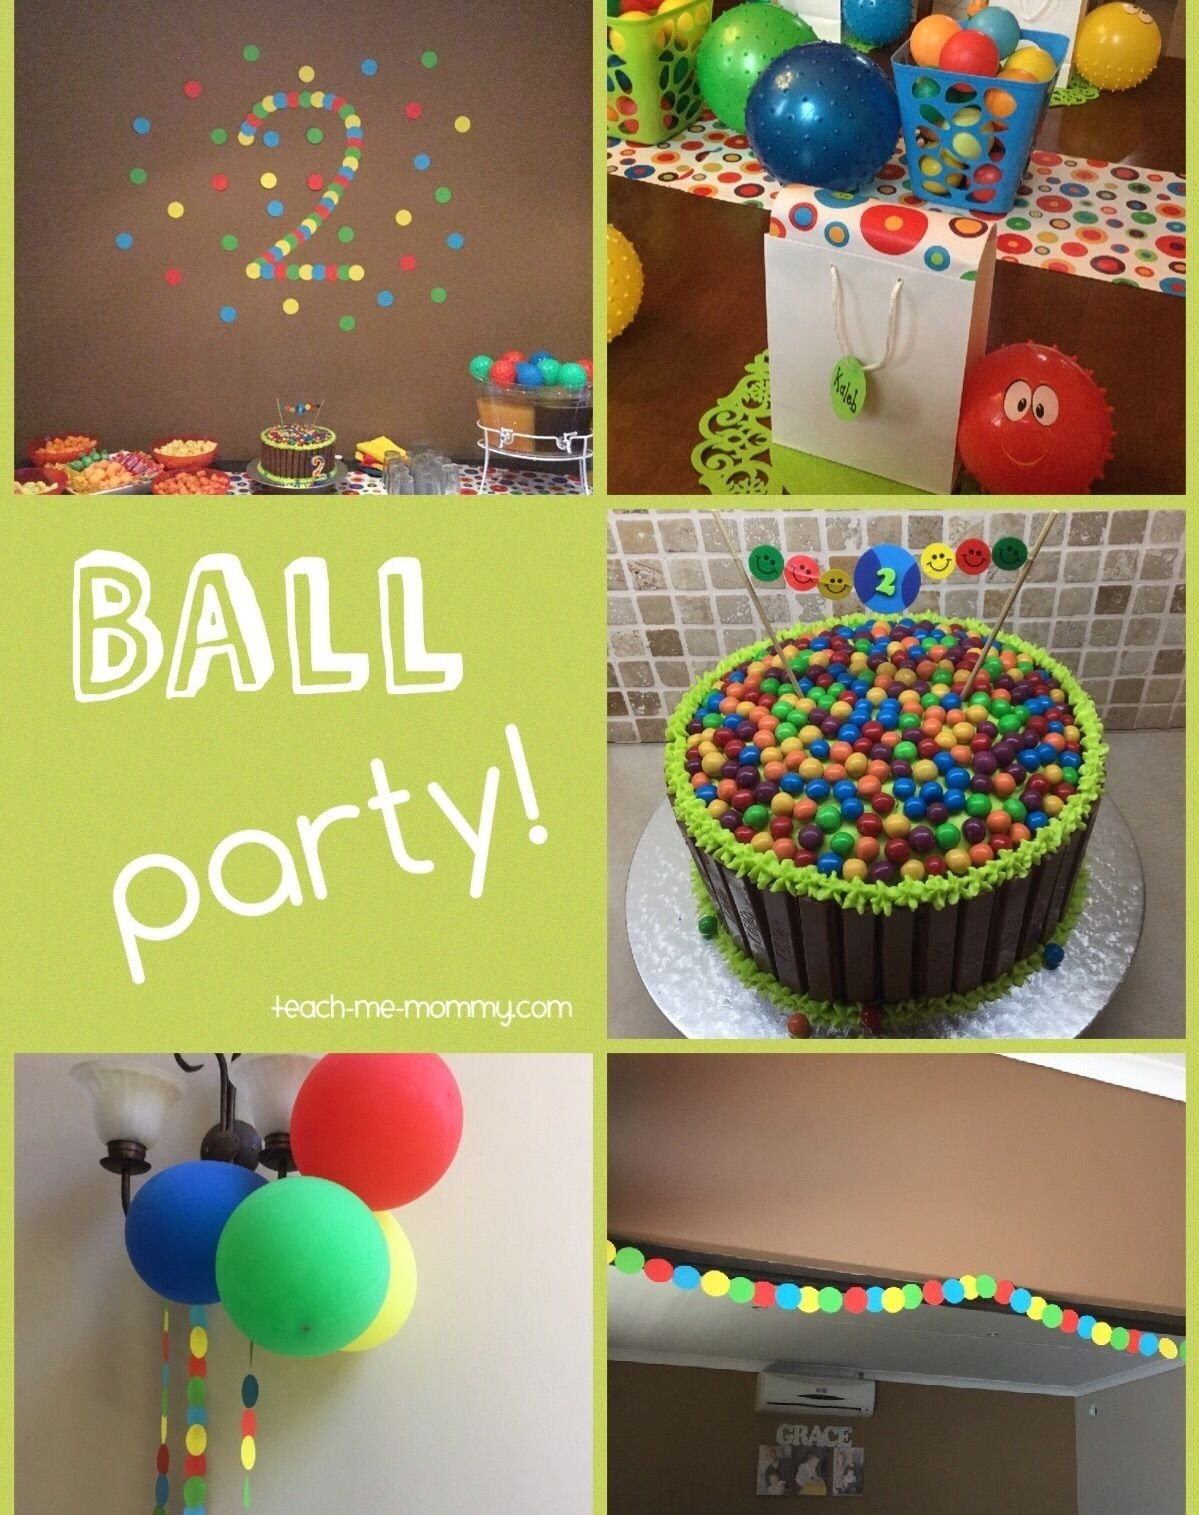 10 Most Recommended 2 Year Old Bday Party Ideas ball themed party for a 2 year old themed parties birthdays and 4 2020